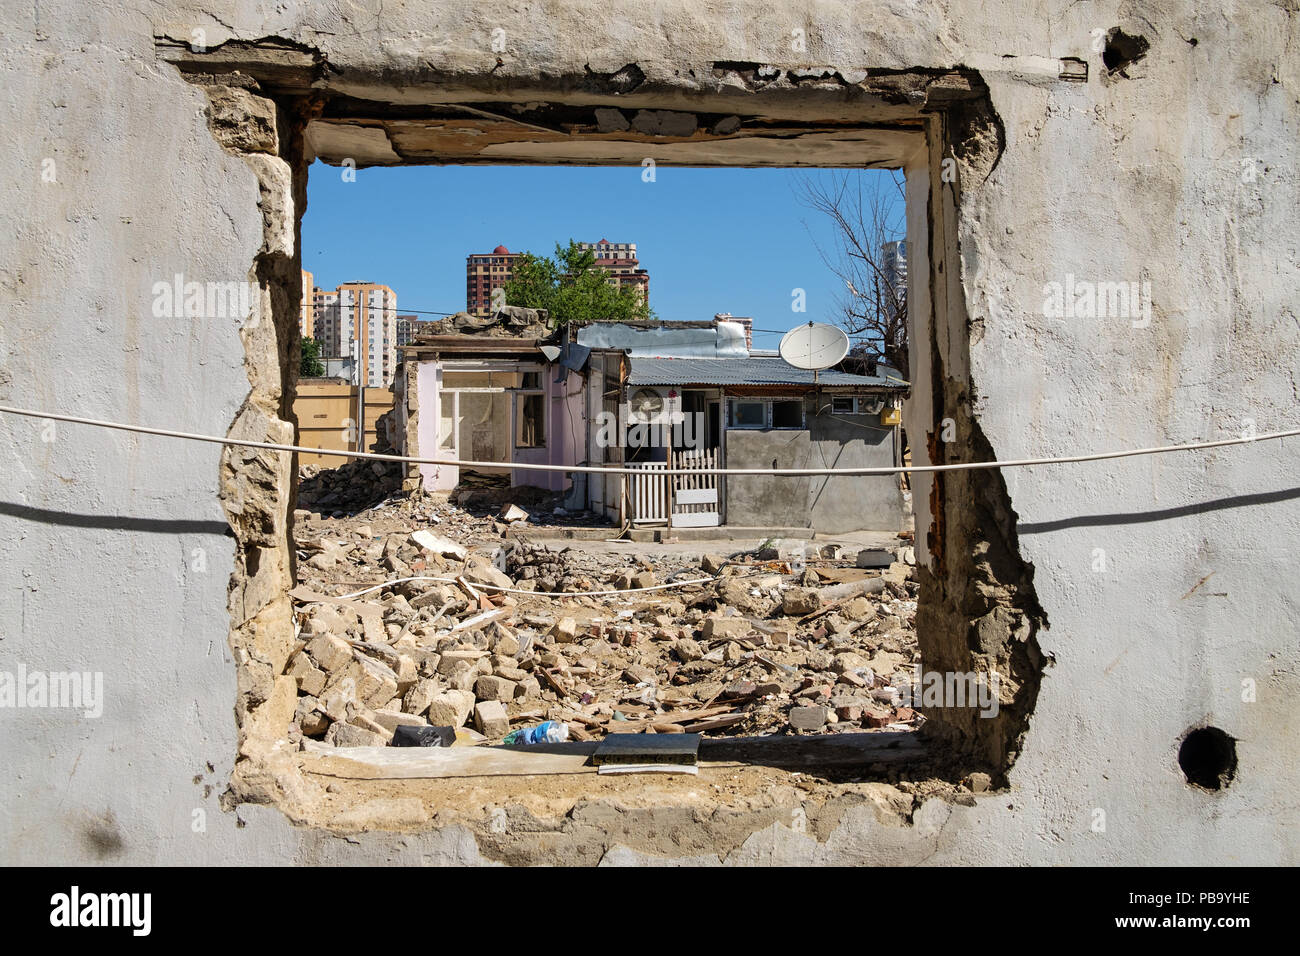 Demolition of an old residential neighbourhood in the city centre of Baku, Azerbaijan to make space for a construction of new bulidings. - Stock Image